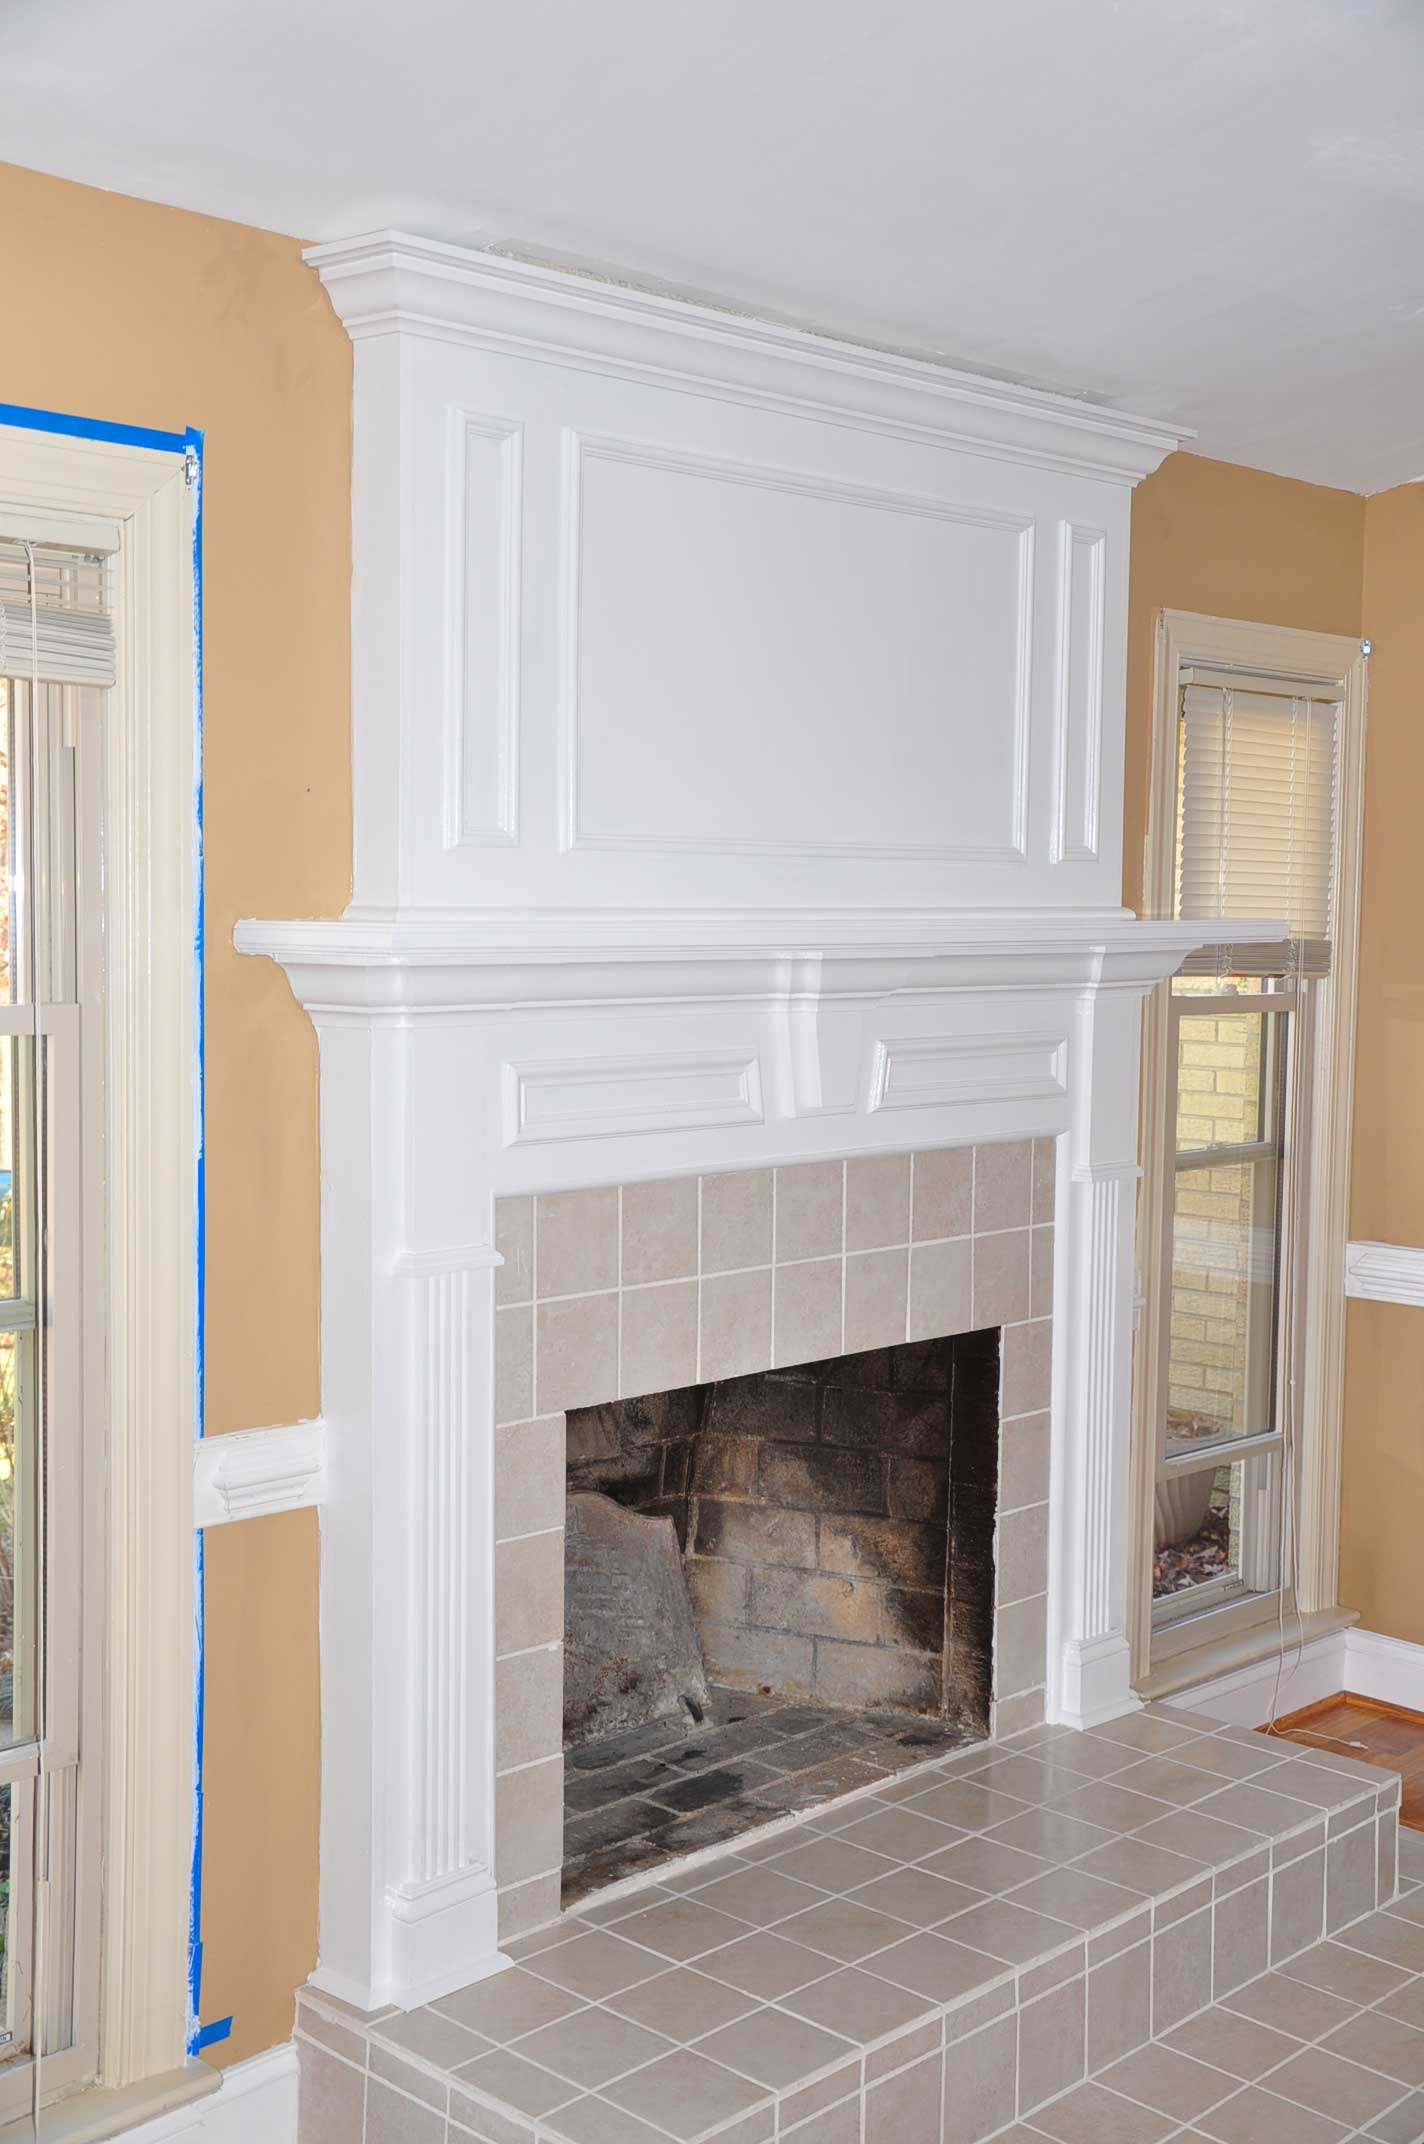 Paint brick fireplace ideas fireplace design ideas brick fireplace remodel before and after brick fireplace remodel ideas brick fireplace remodel pictures brick wall fireplace remodel diy solutioingenieria Gallery